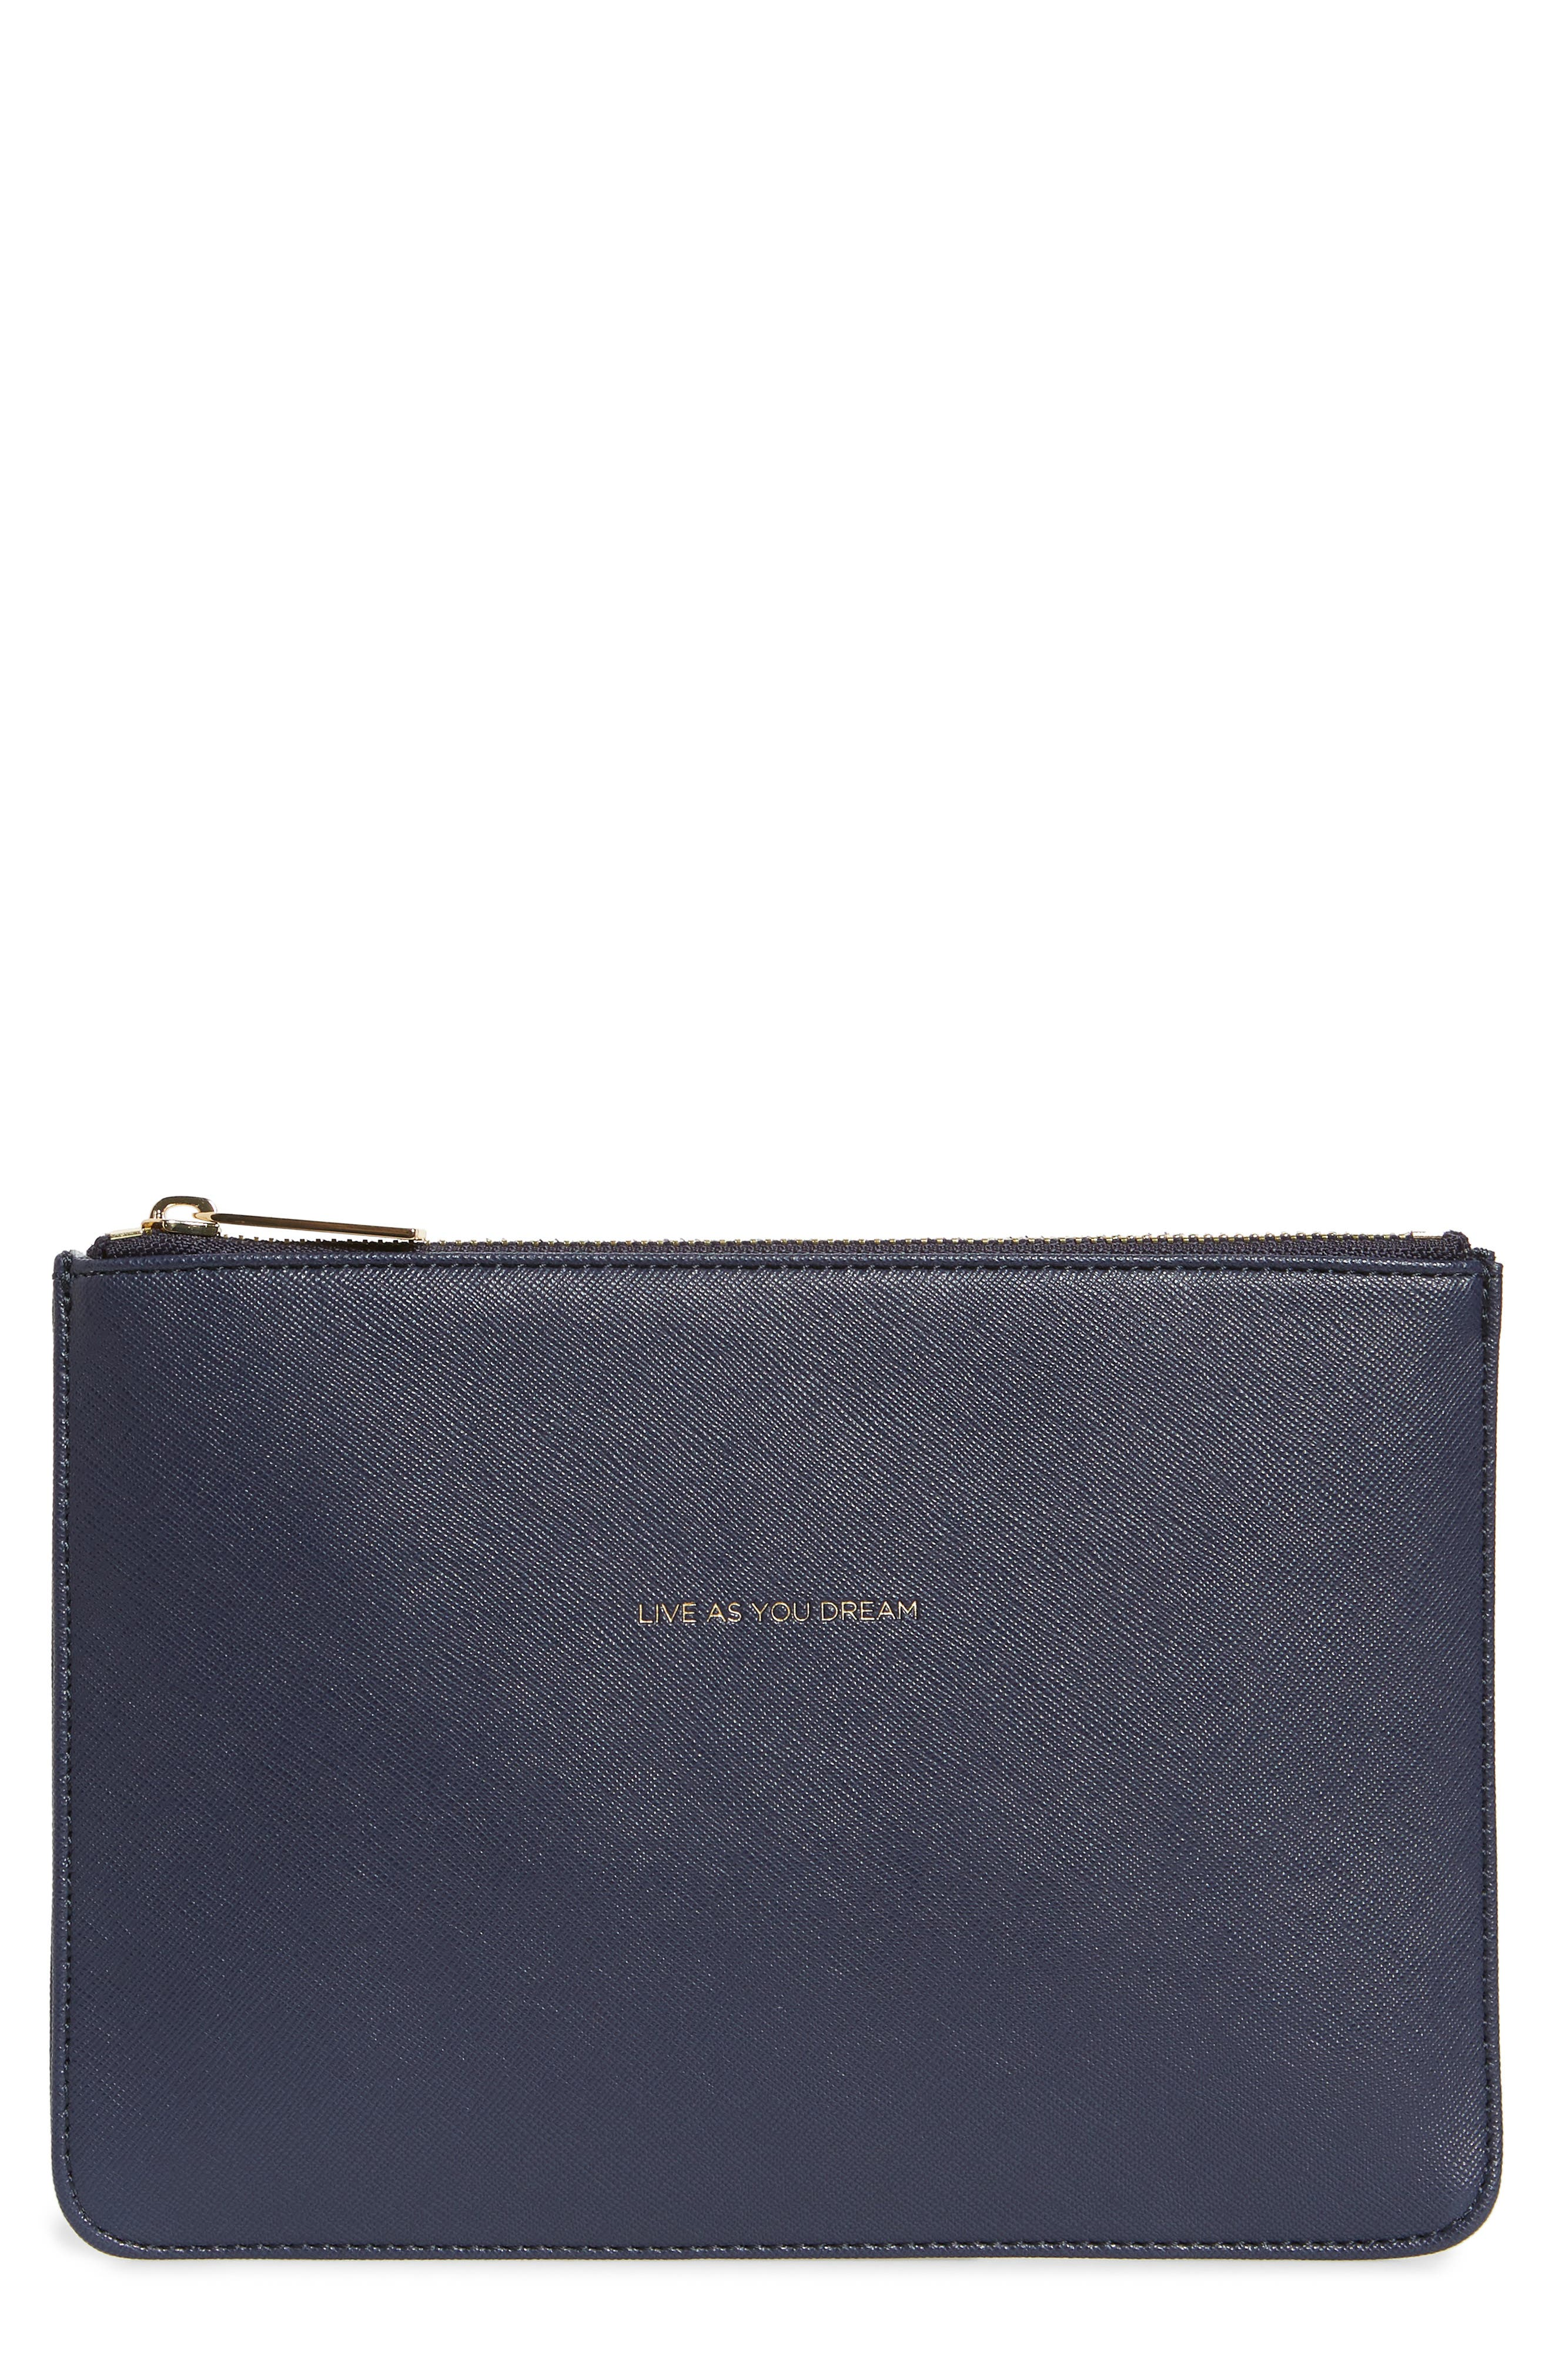 Live As You Dream Medium Faux Leather Pouch,                             Main thumbnail 1, color,                             NAVY